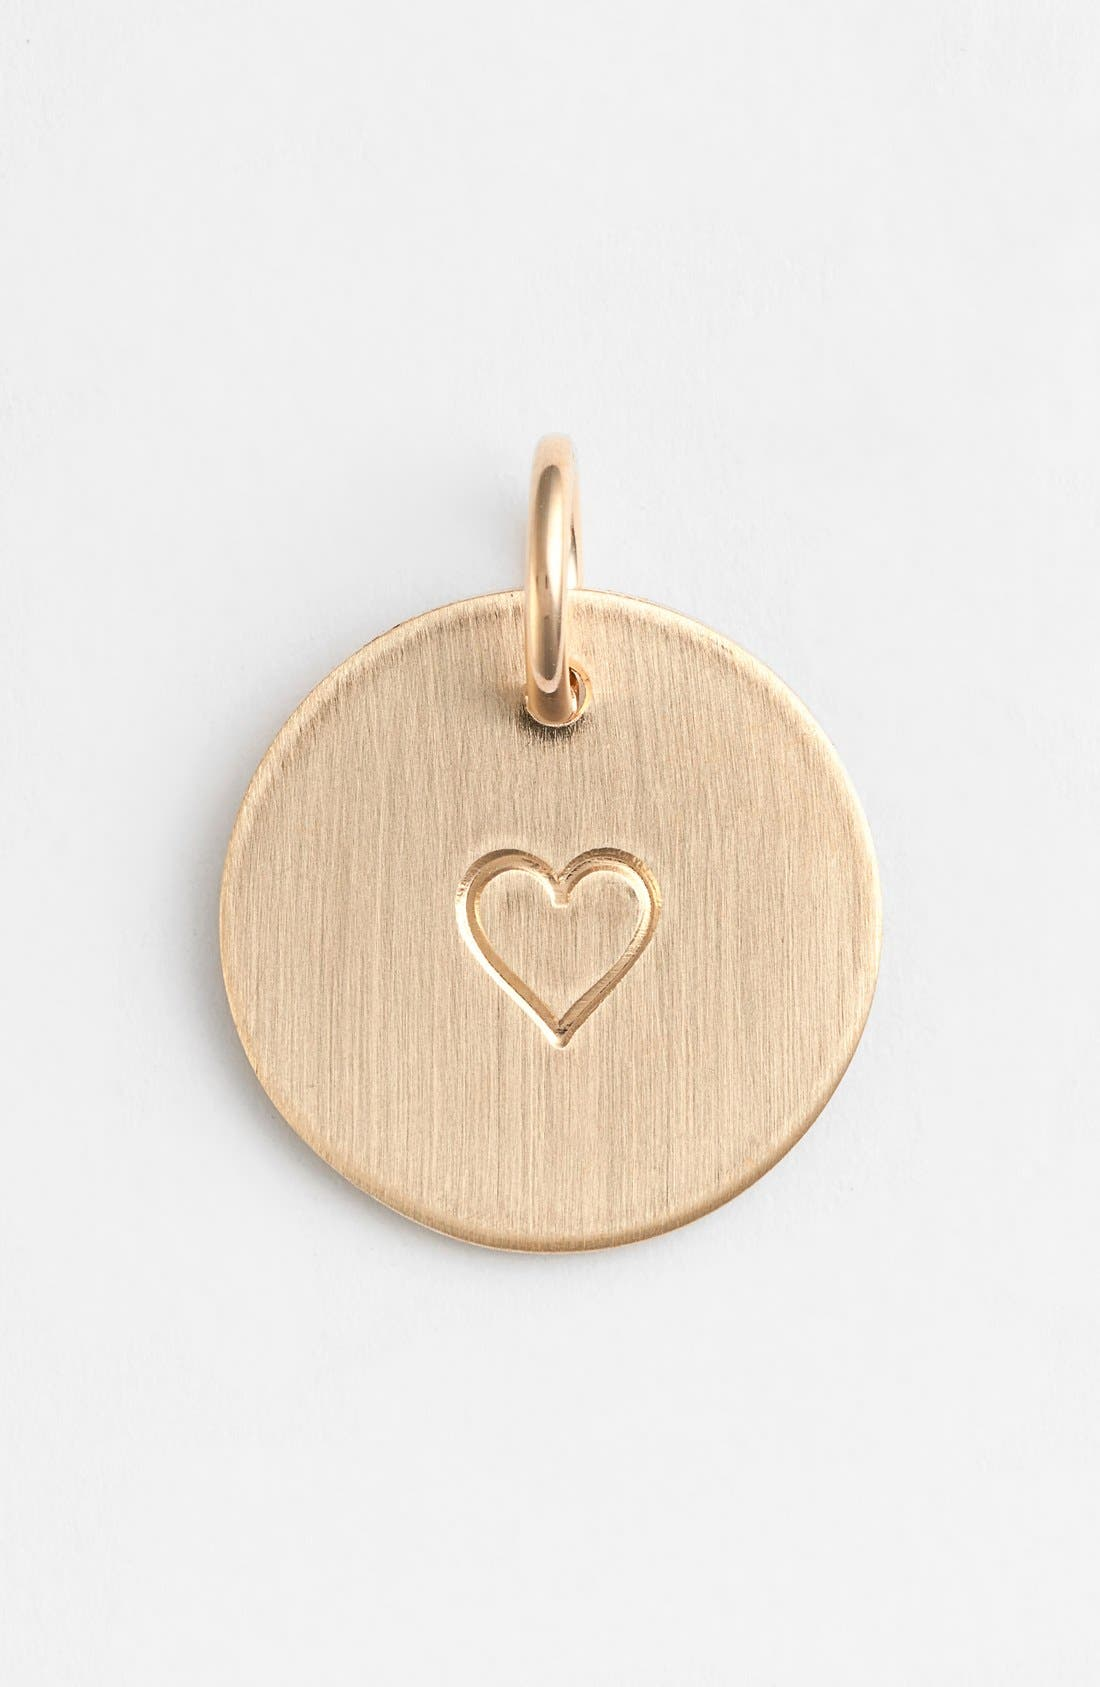 Alternate Image 1 Selected - Nashelle Heart Stamp Charm